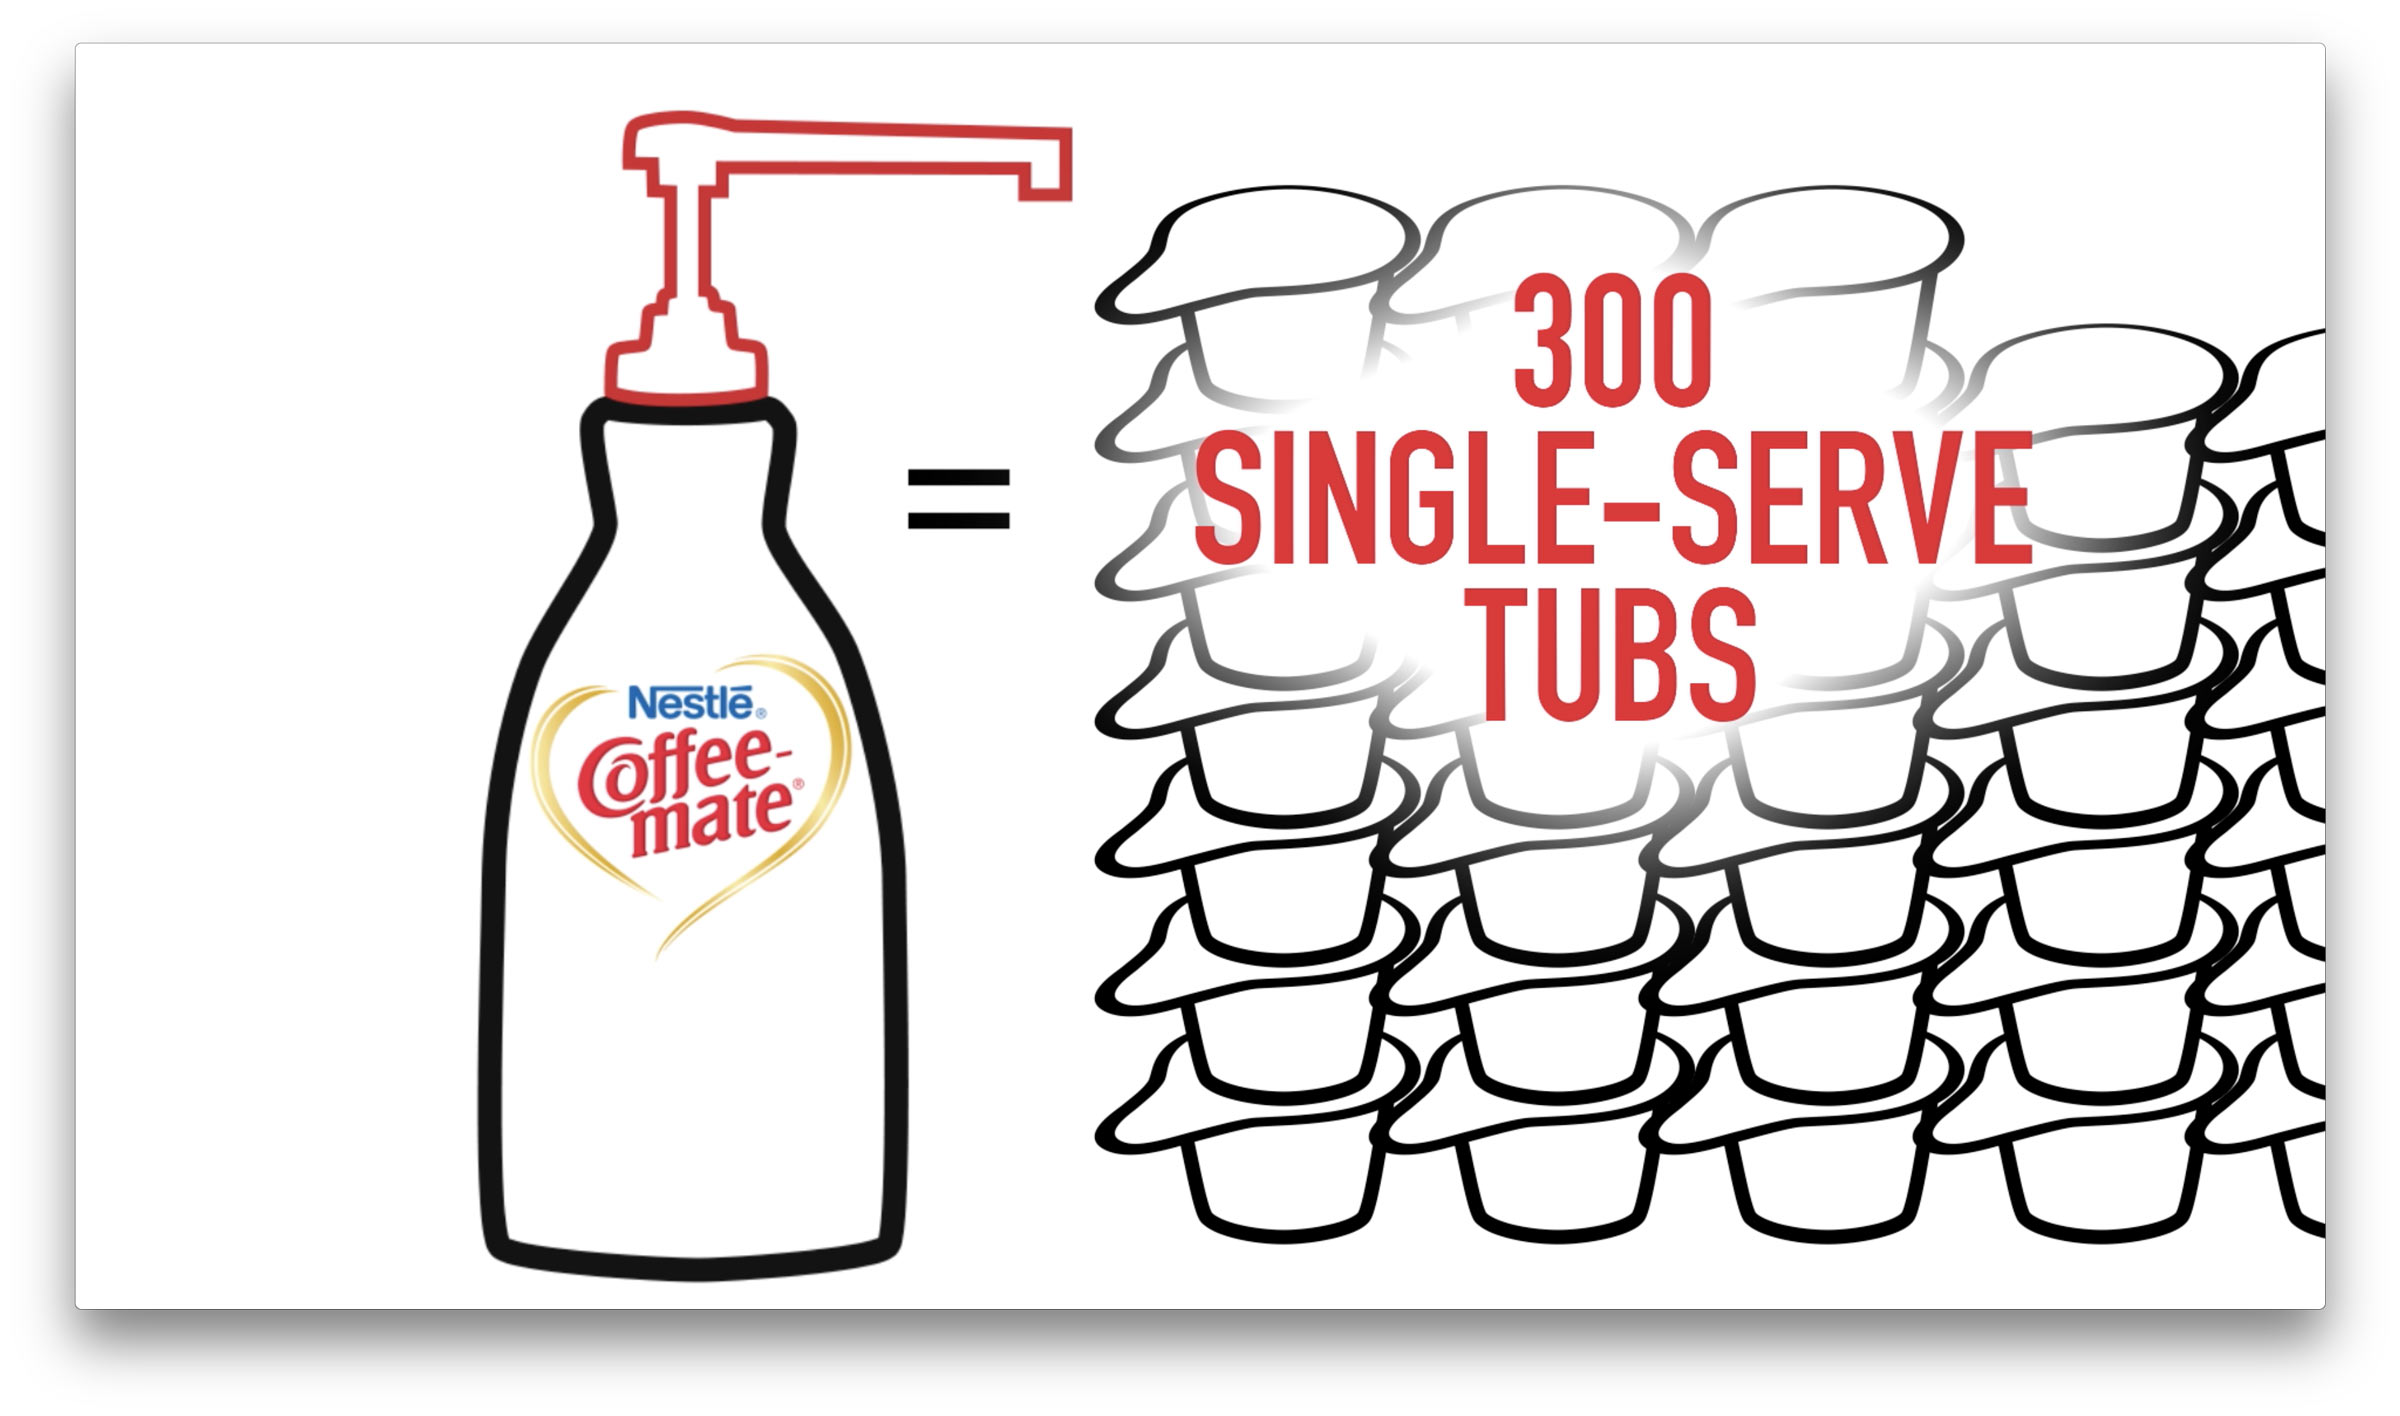 Large Coffee-mate dispenser with 300 single-serve tubs